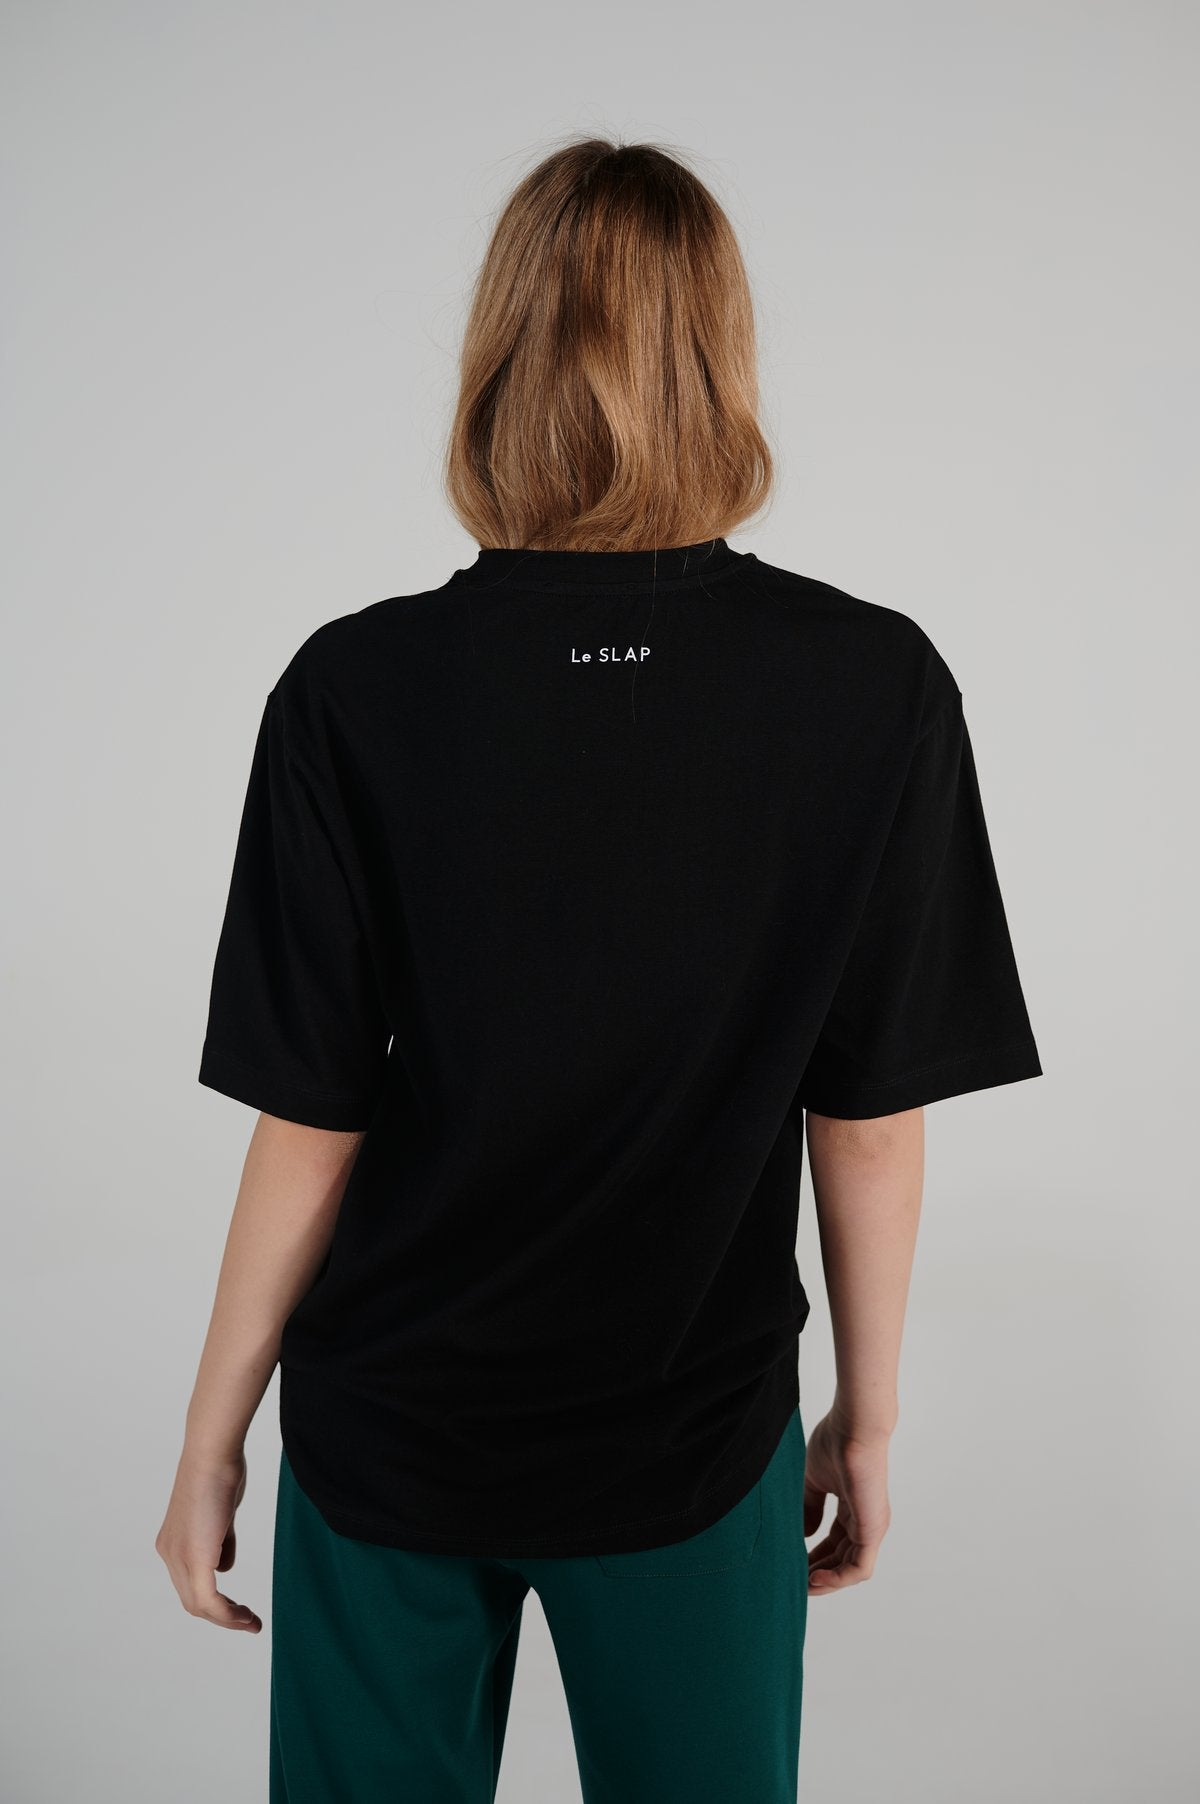 Loose-fit Tee | LIFETIME collection